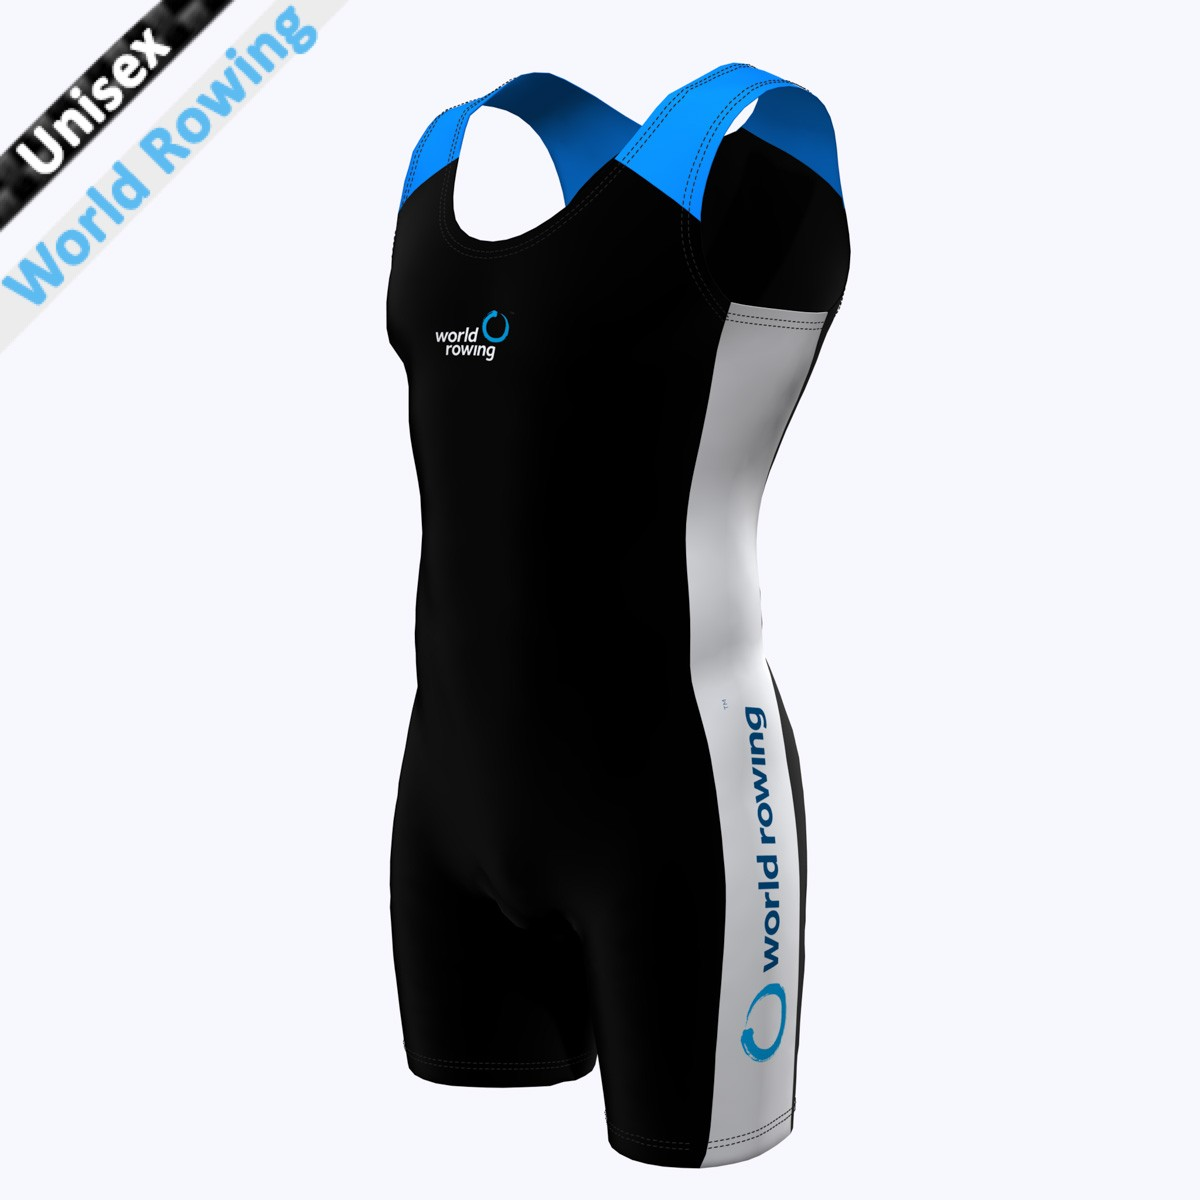 World Rowing Suit - schwarz